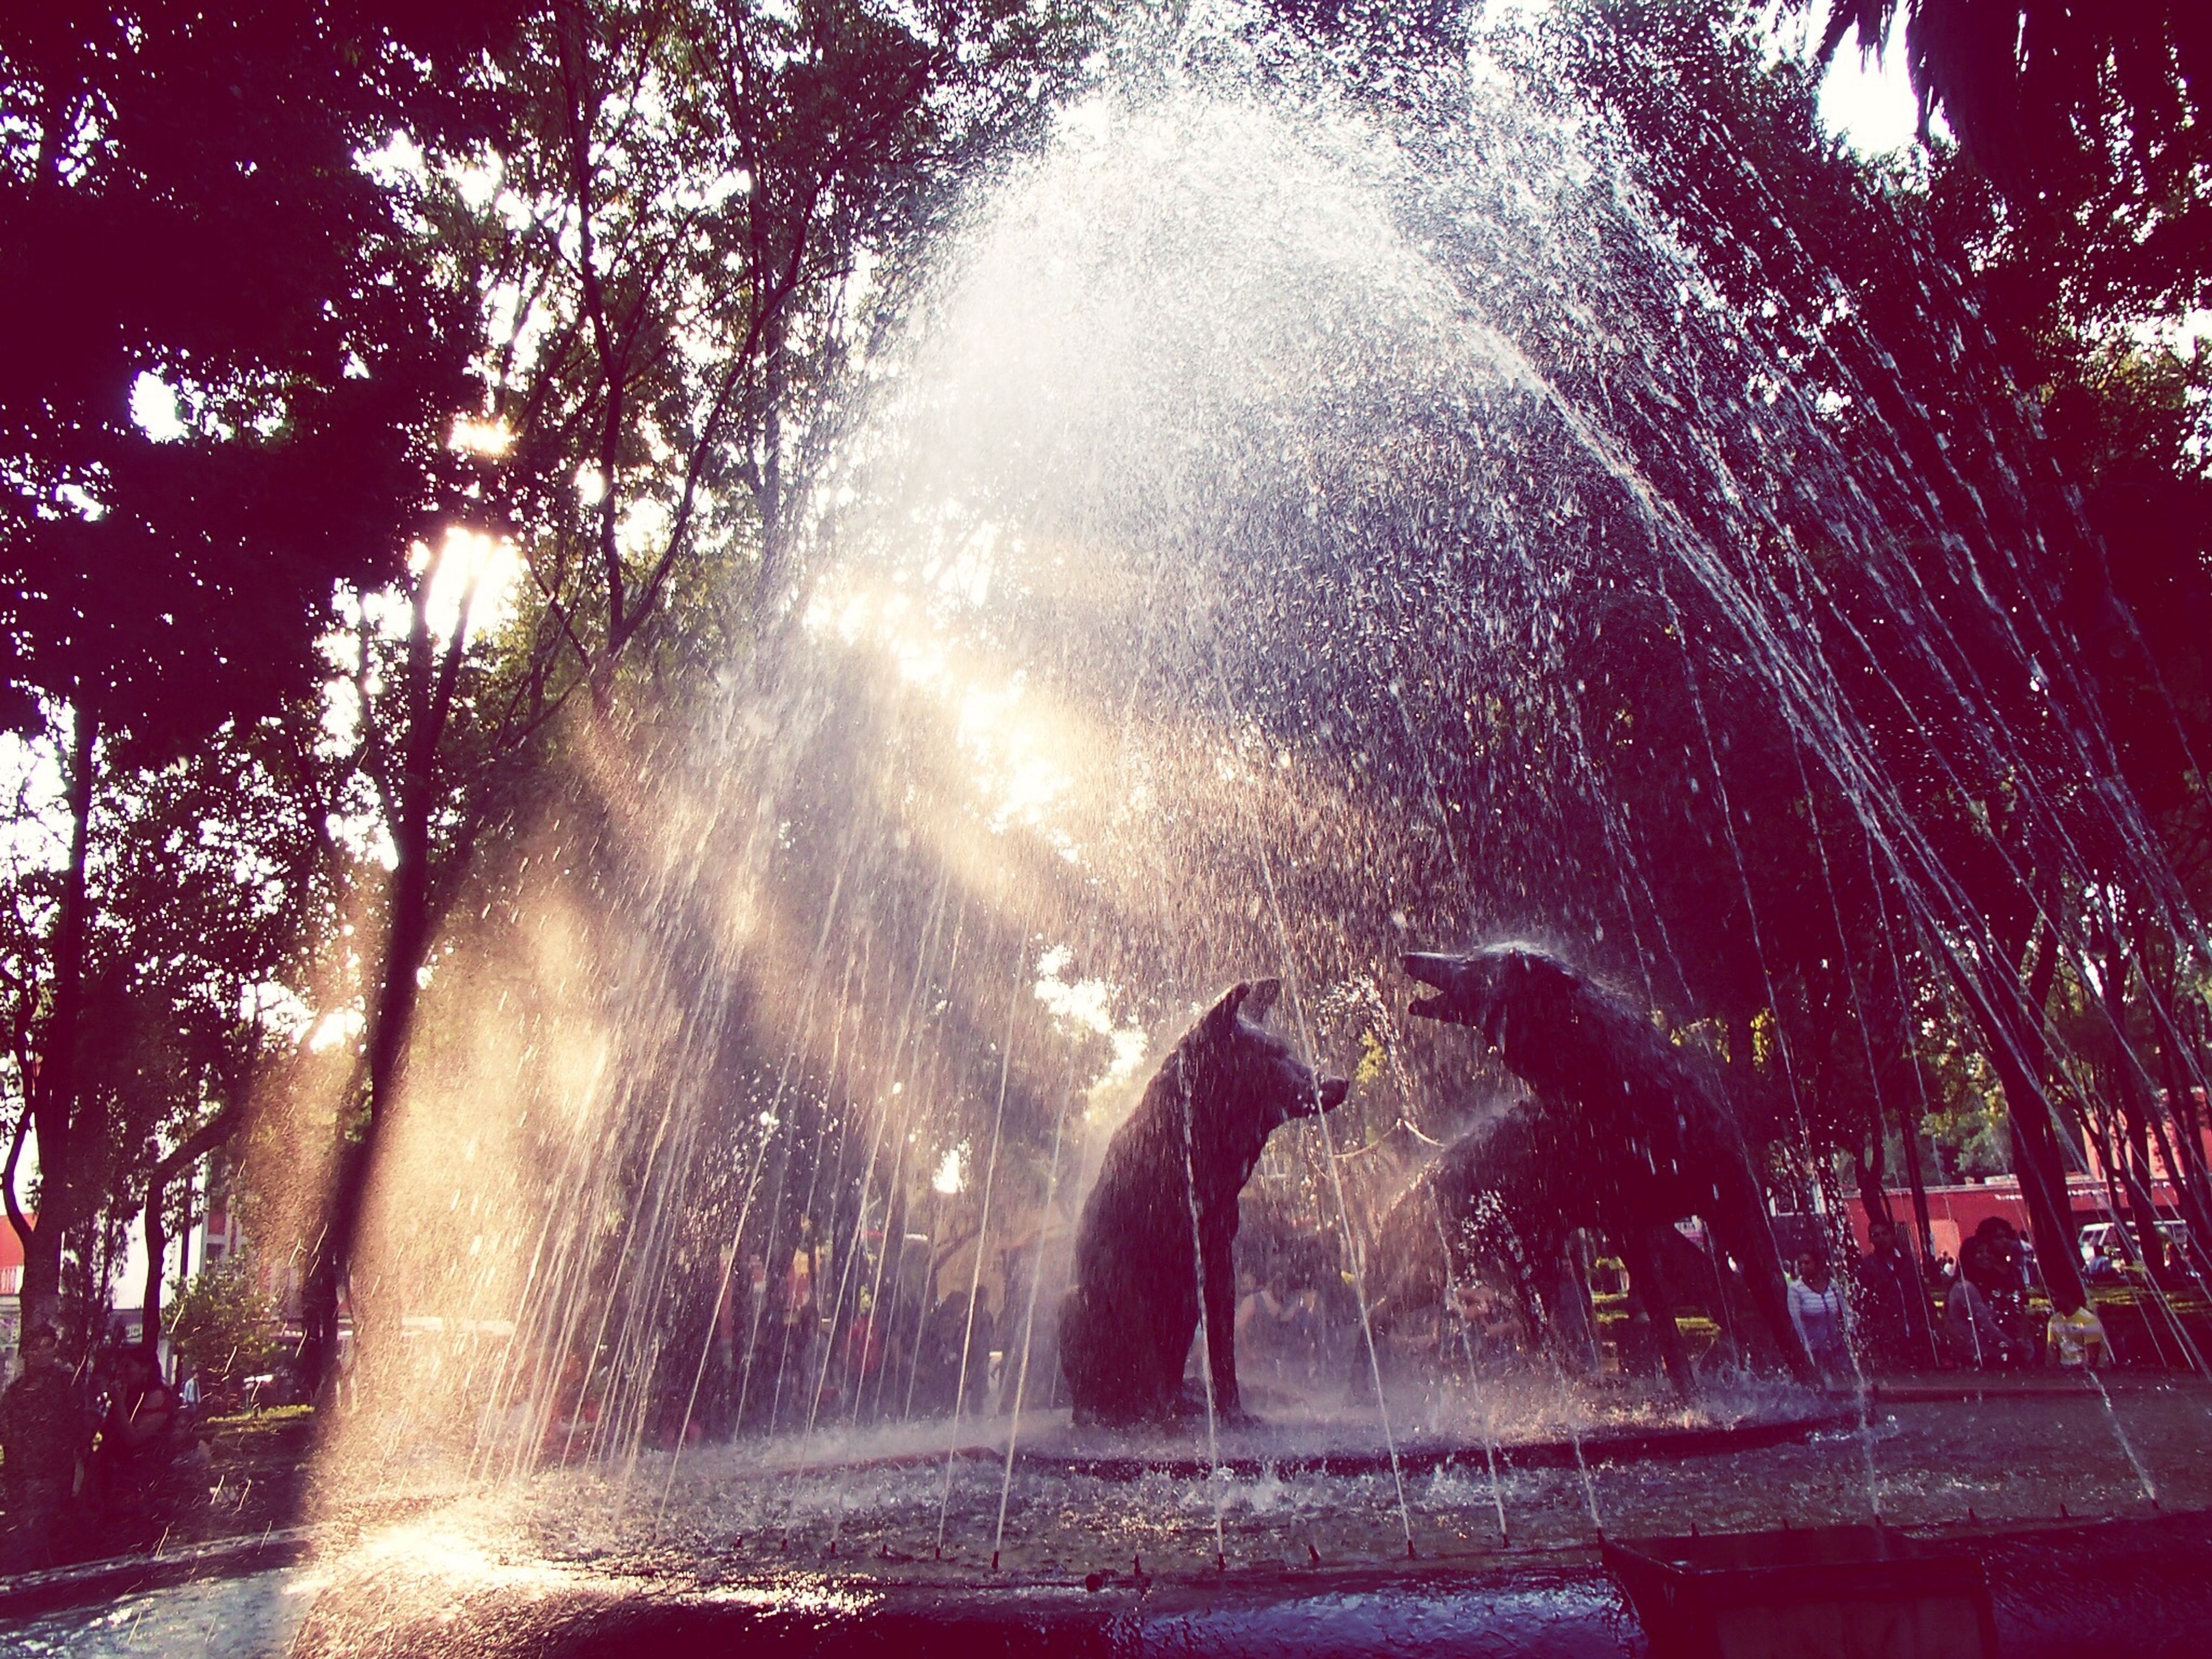 fountain, motion, tree, spraying, water, long exposure, splashing, blurred motion, low angle view, night, park - man made space, illuminated, lens flare, outdoors, flowing water, built structure, falling, nature, sunlight, clear sky